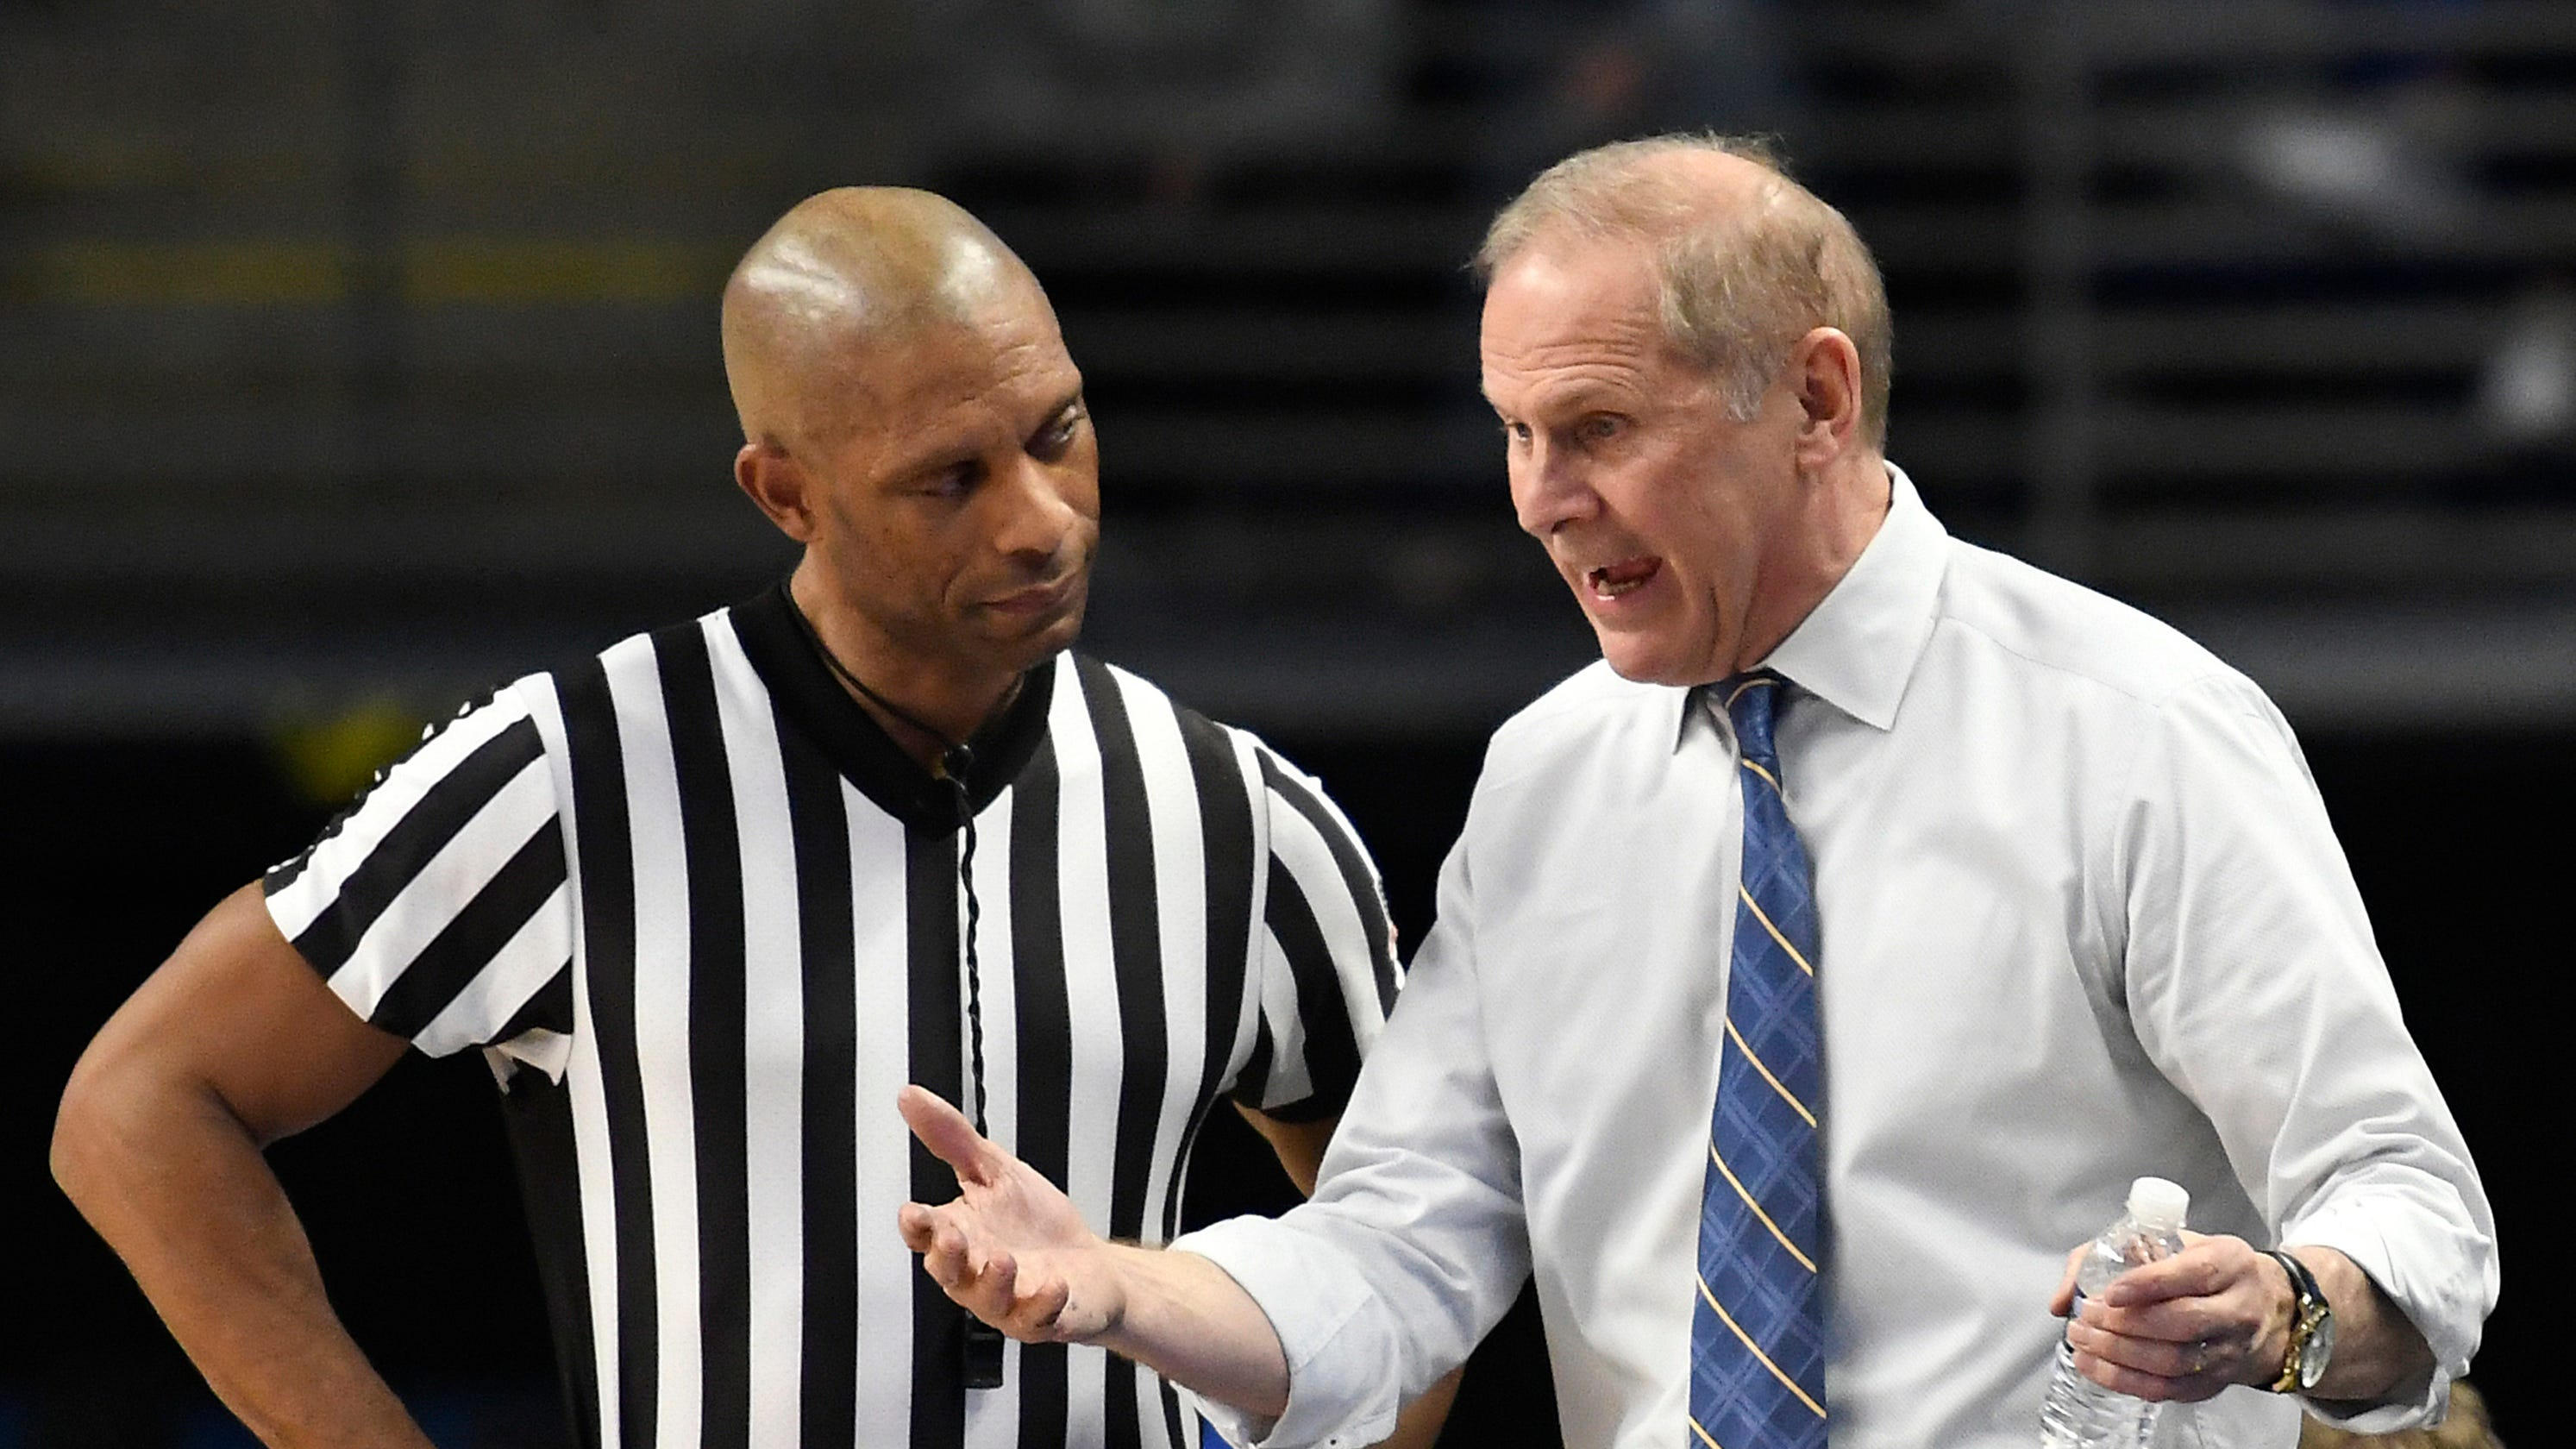 john beilein - photo #13